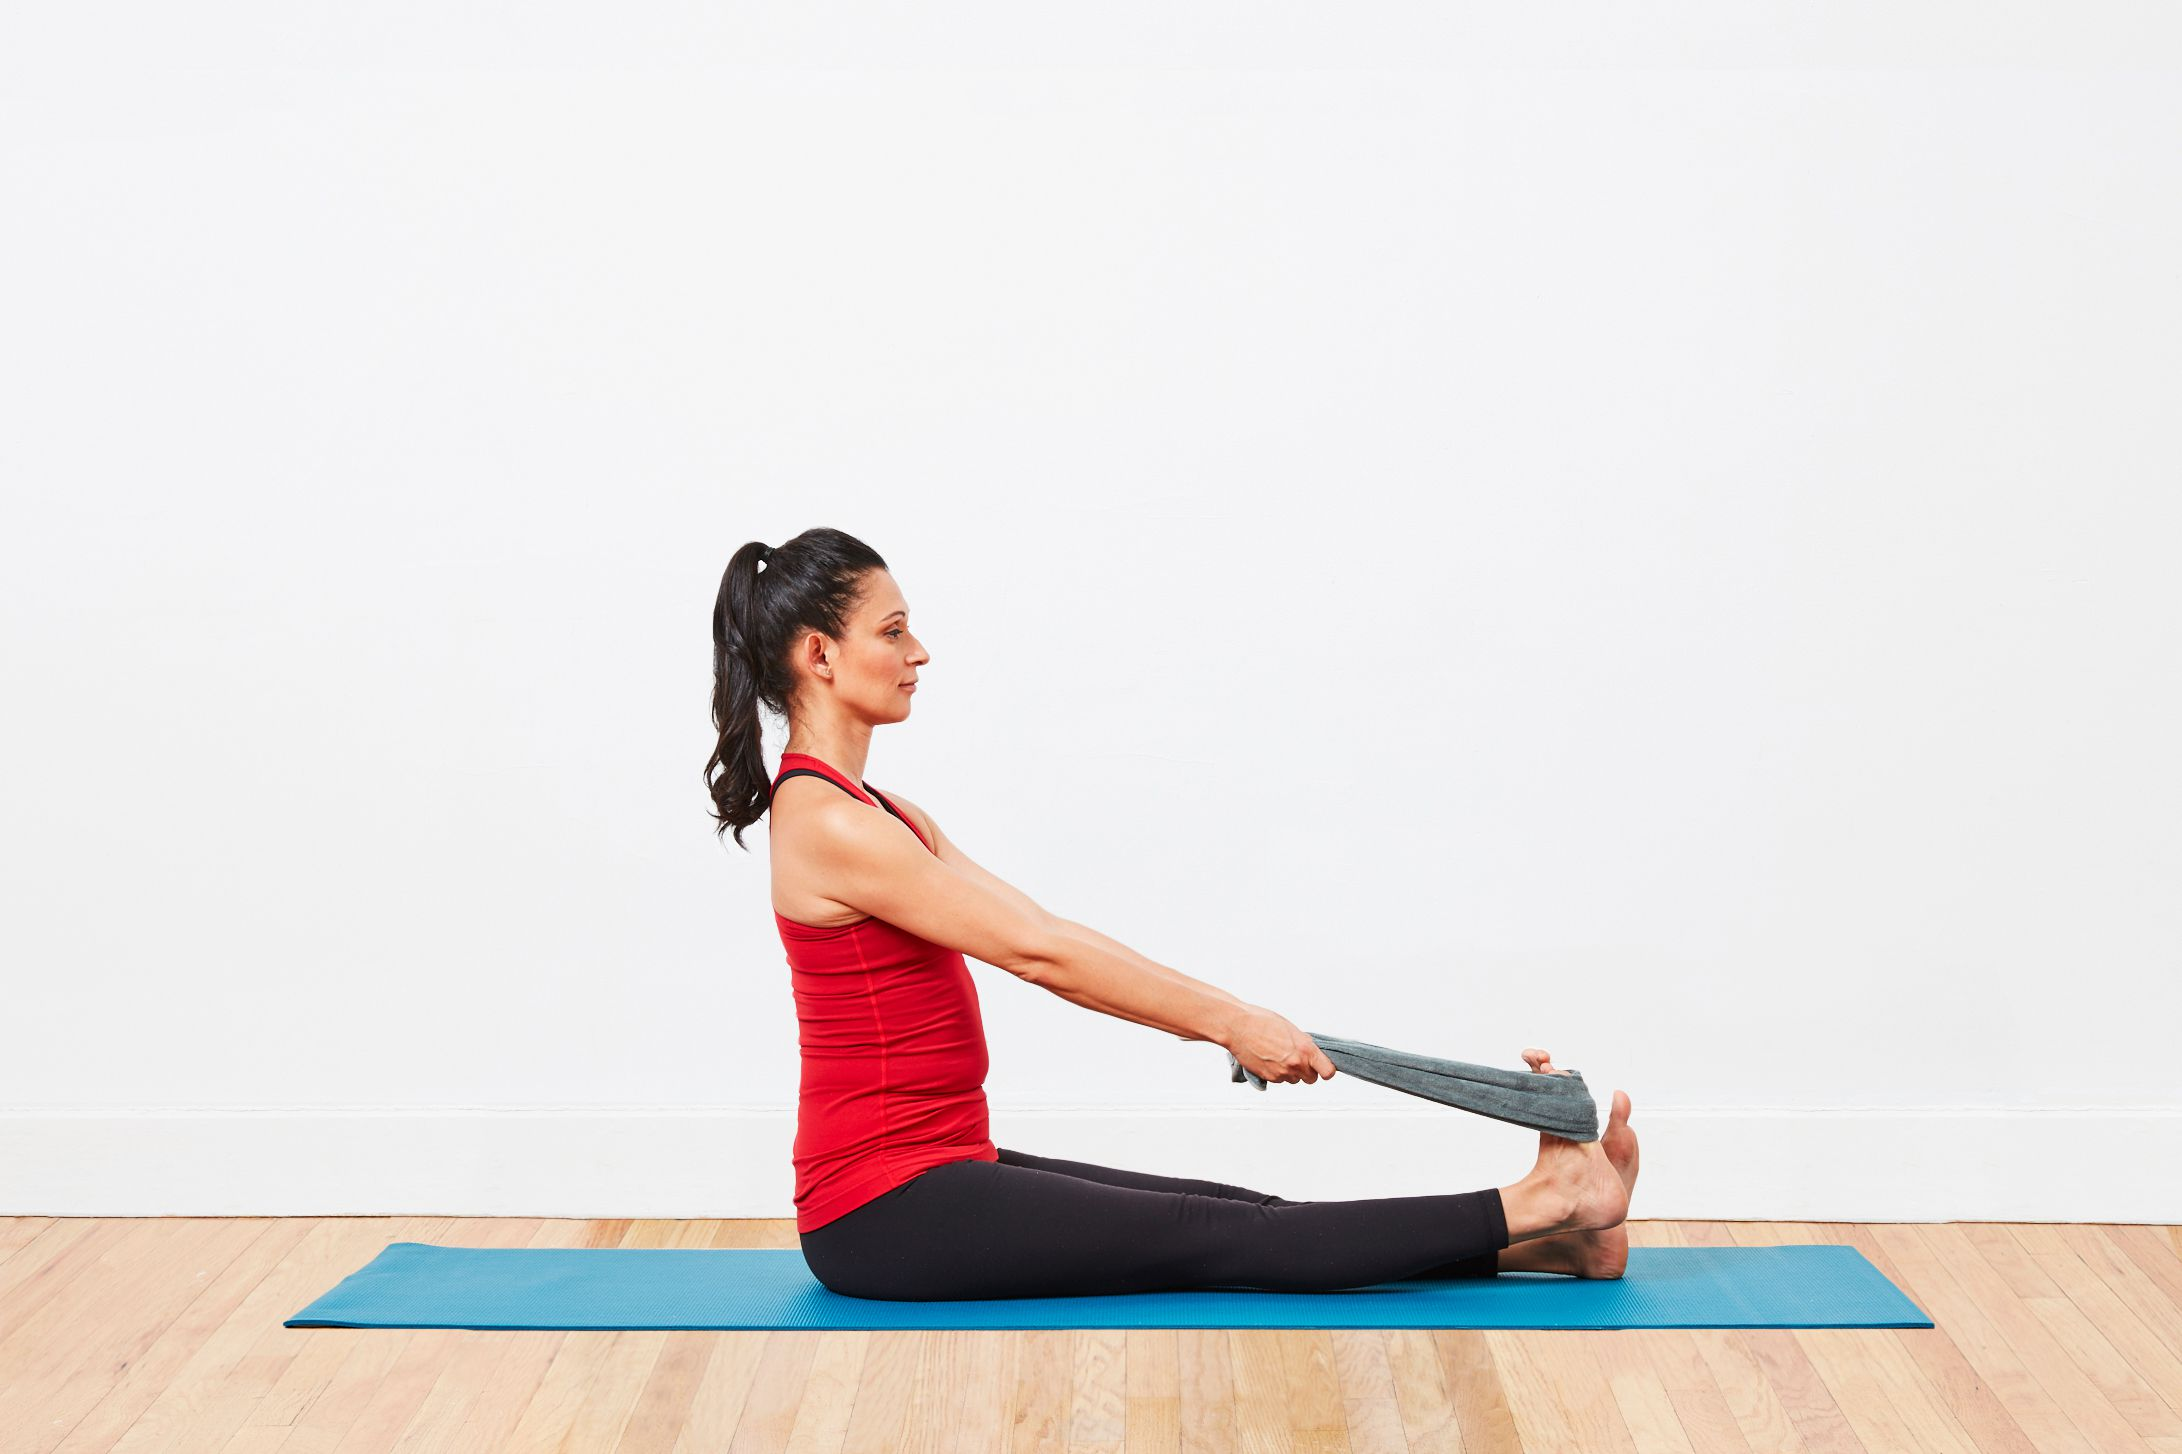 woman performing Calf stretch on a yoga mat